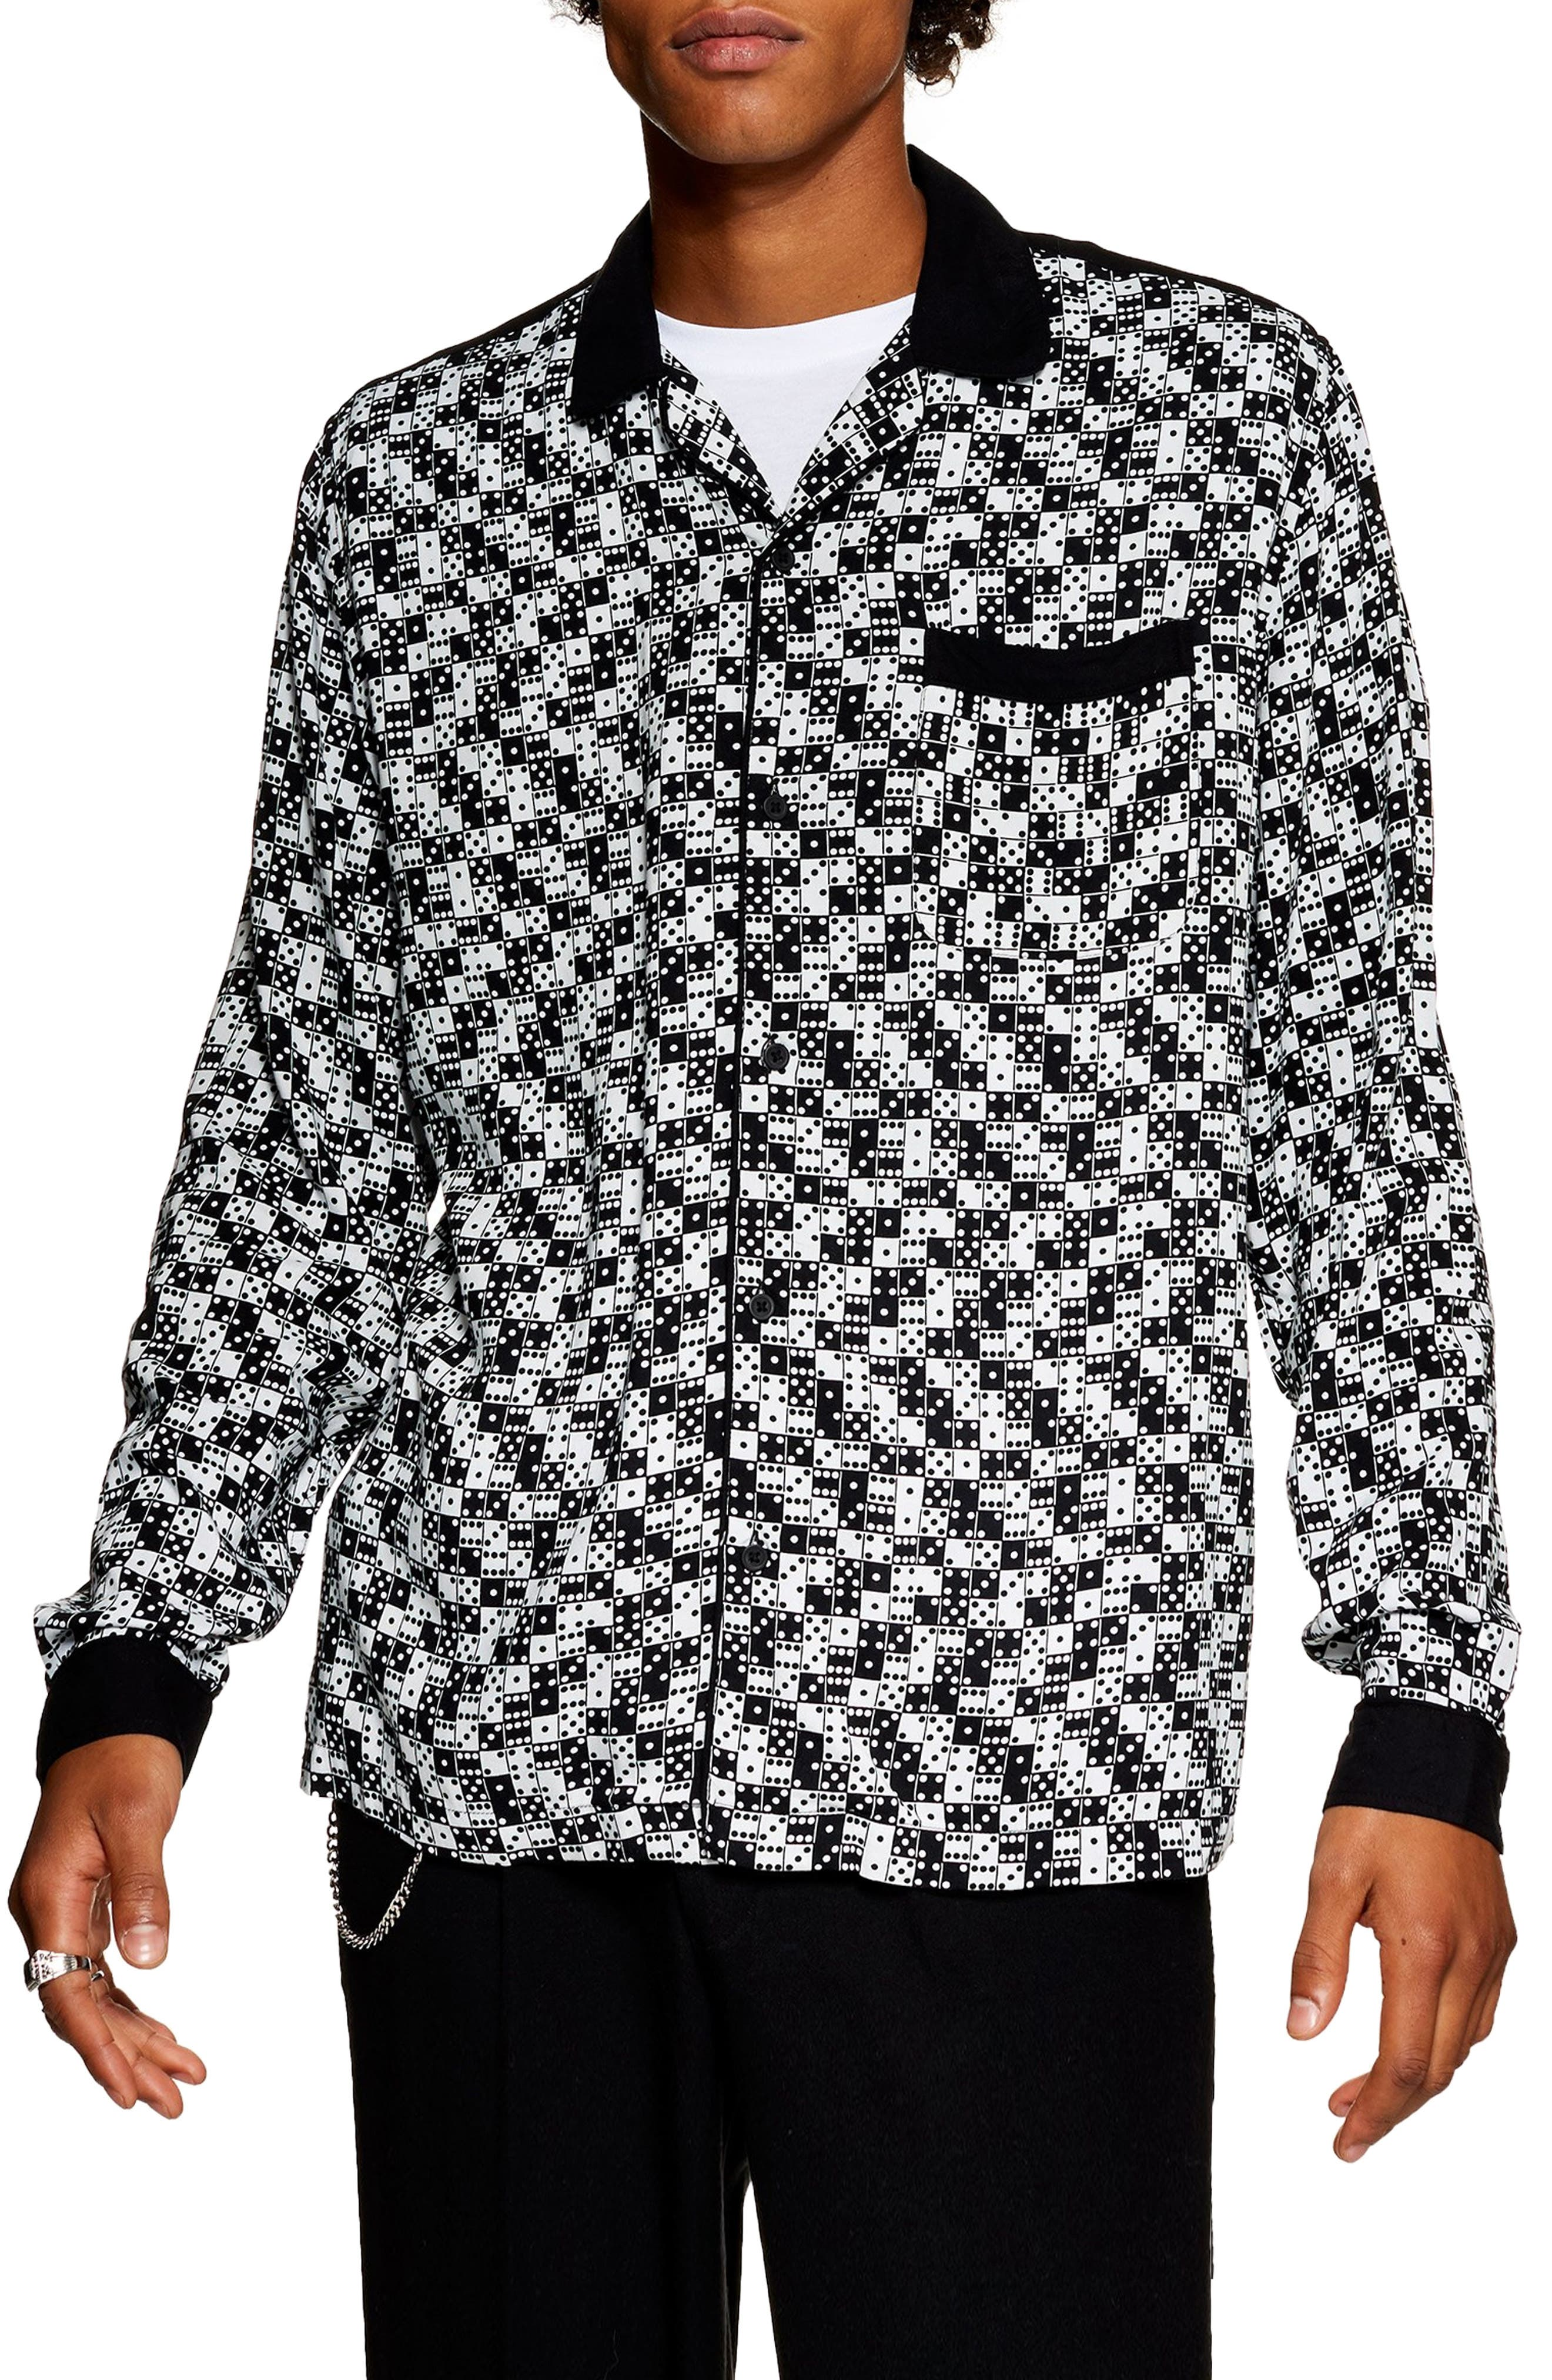 Bodders Domino Print Shirt,                         Main,                         color, BLACK MULTI